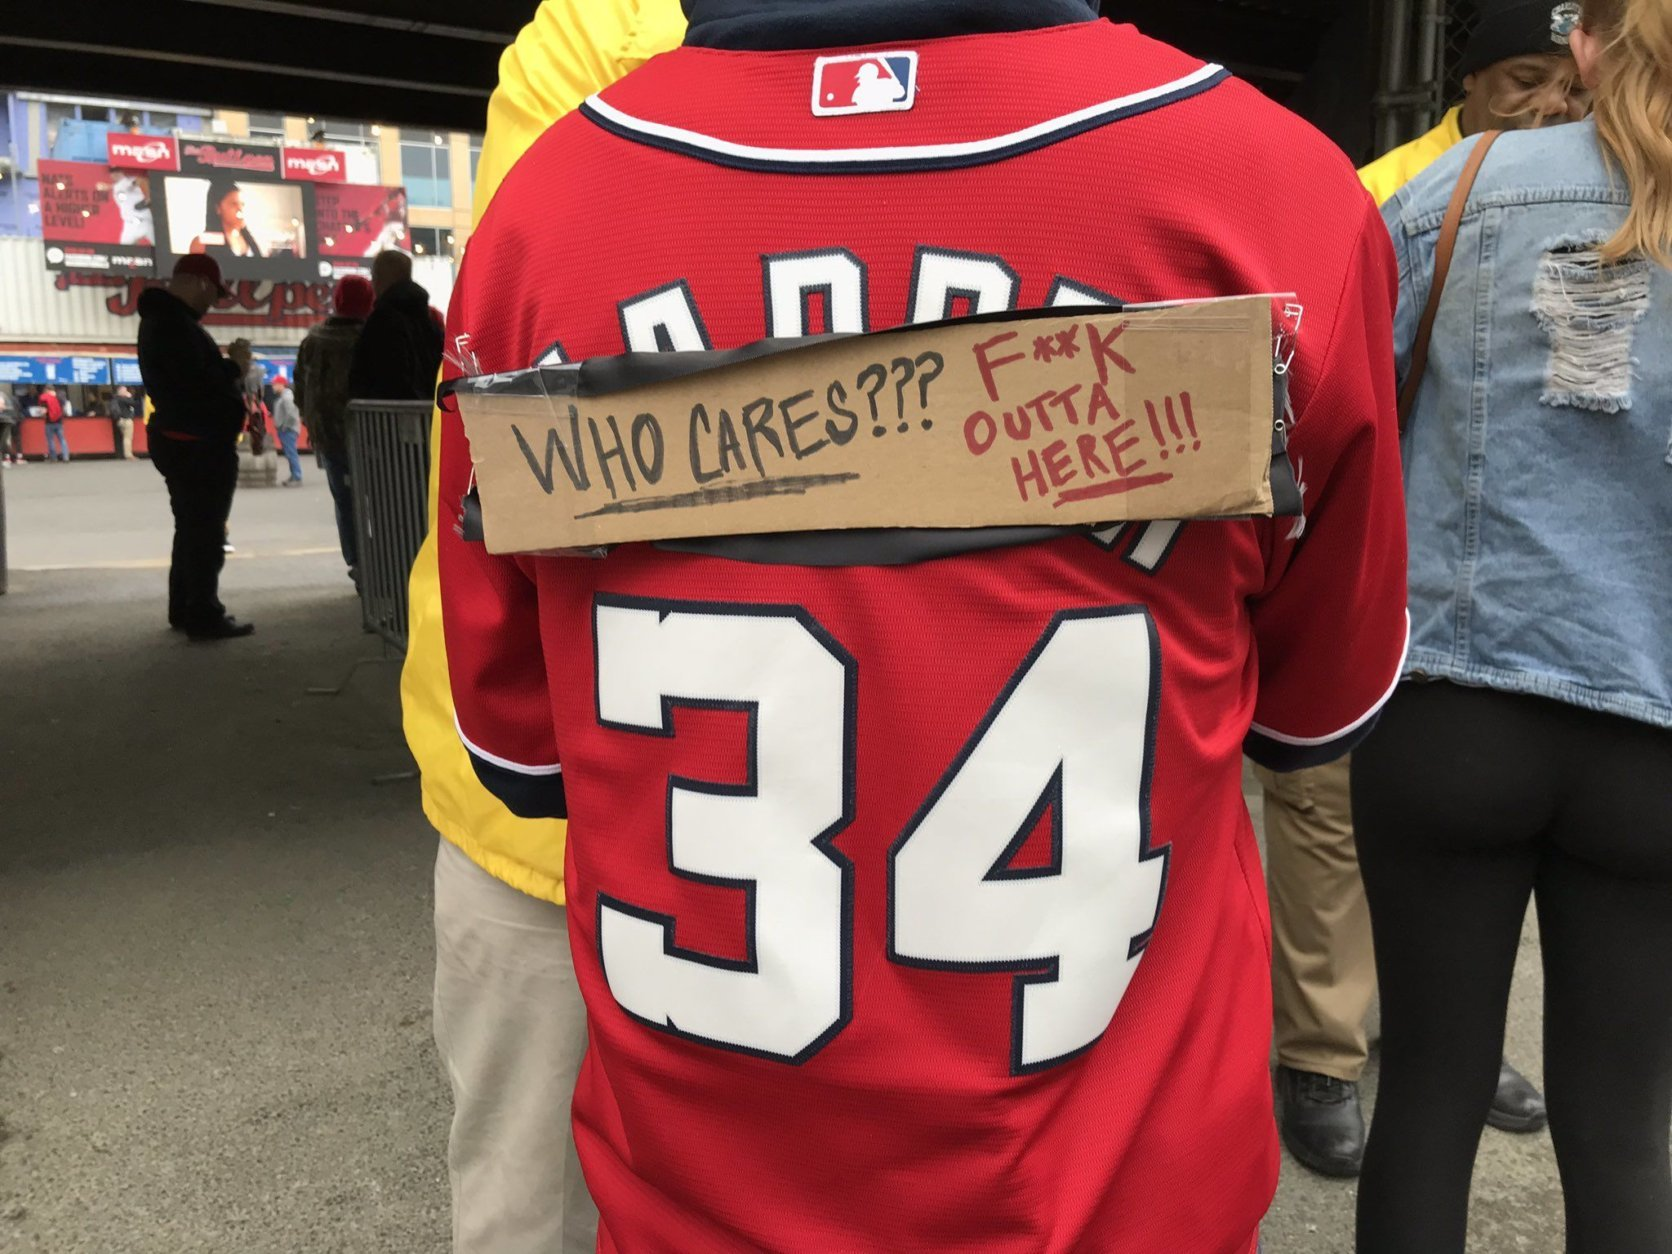 Some of the Nats fans feel jilted. After all, it was only a month ago that he signed with Philly. (WTOP/Michelle Basch)